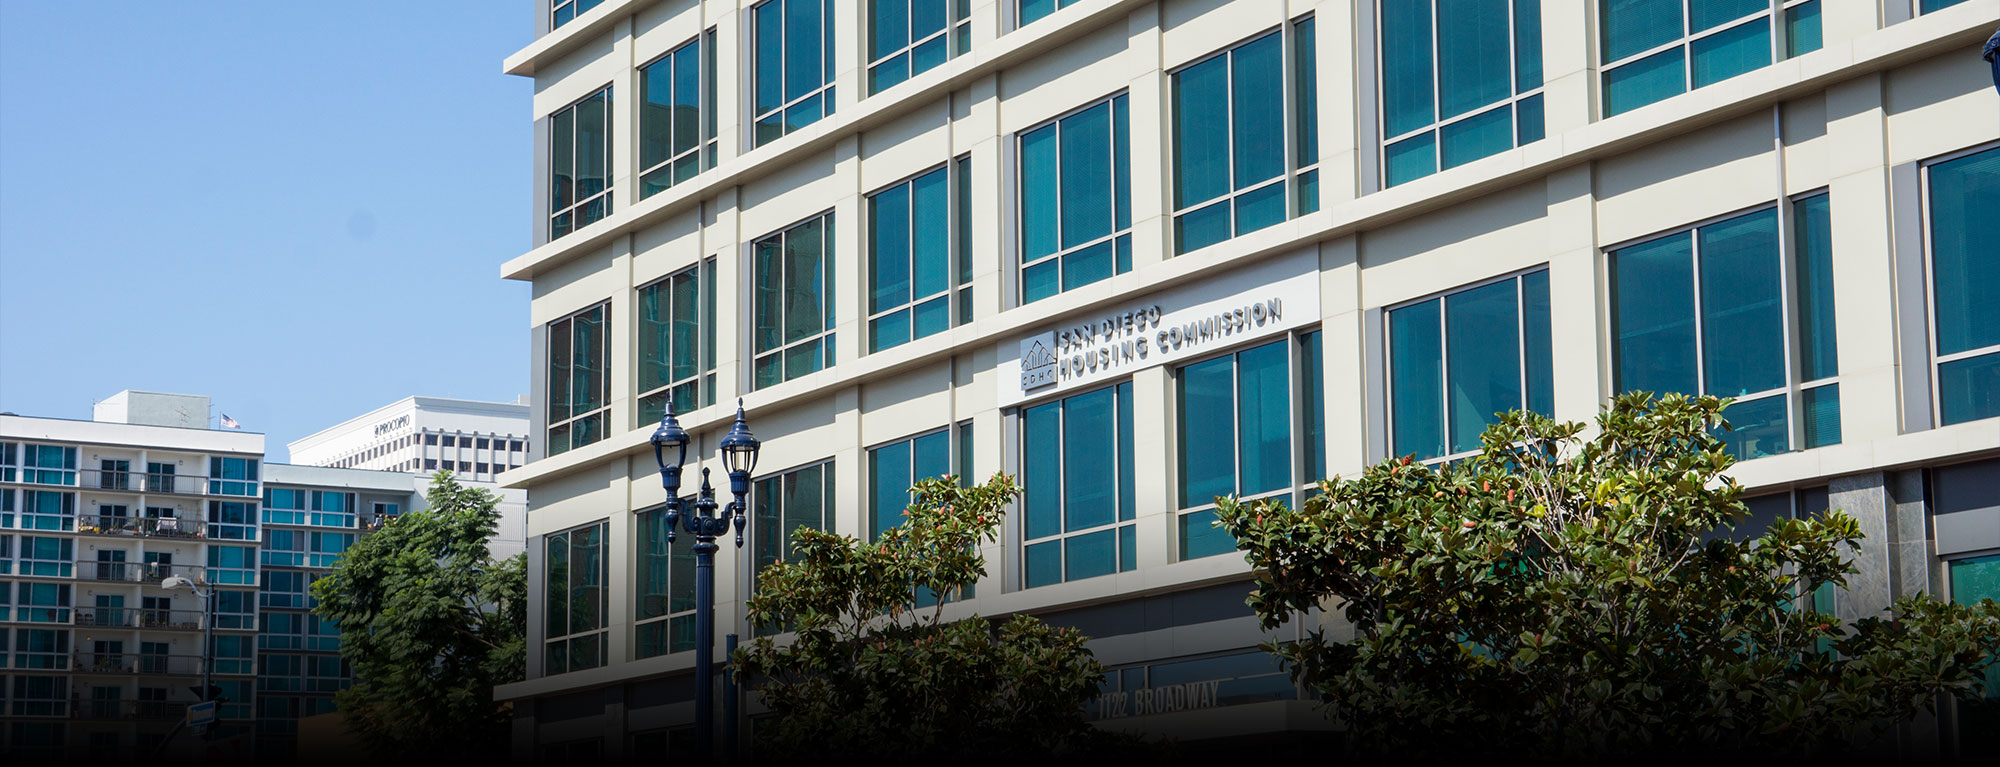 Contact The San Diego Housing Commission